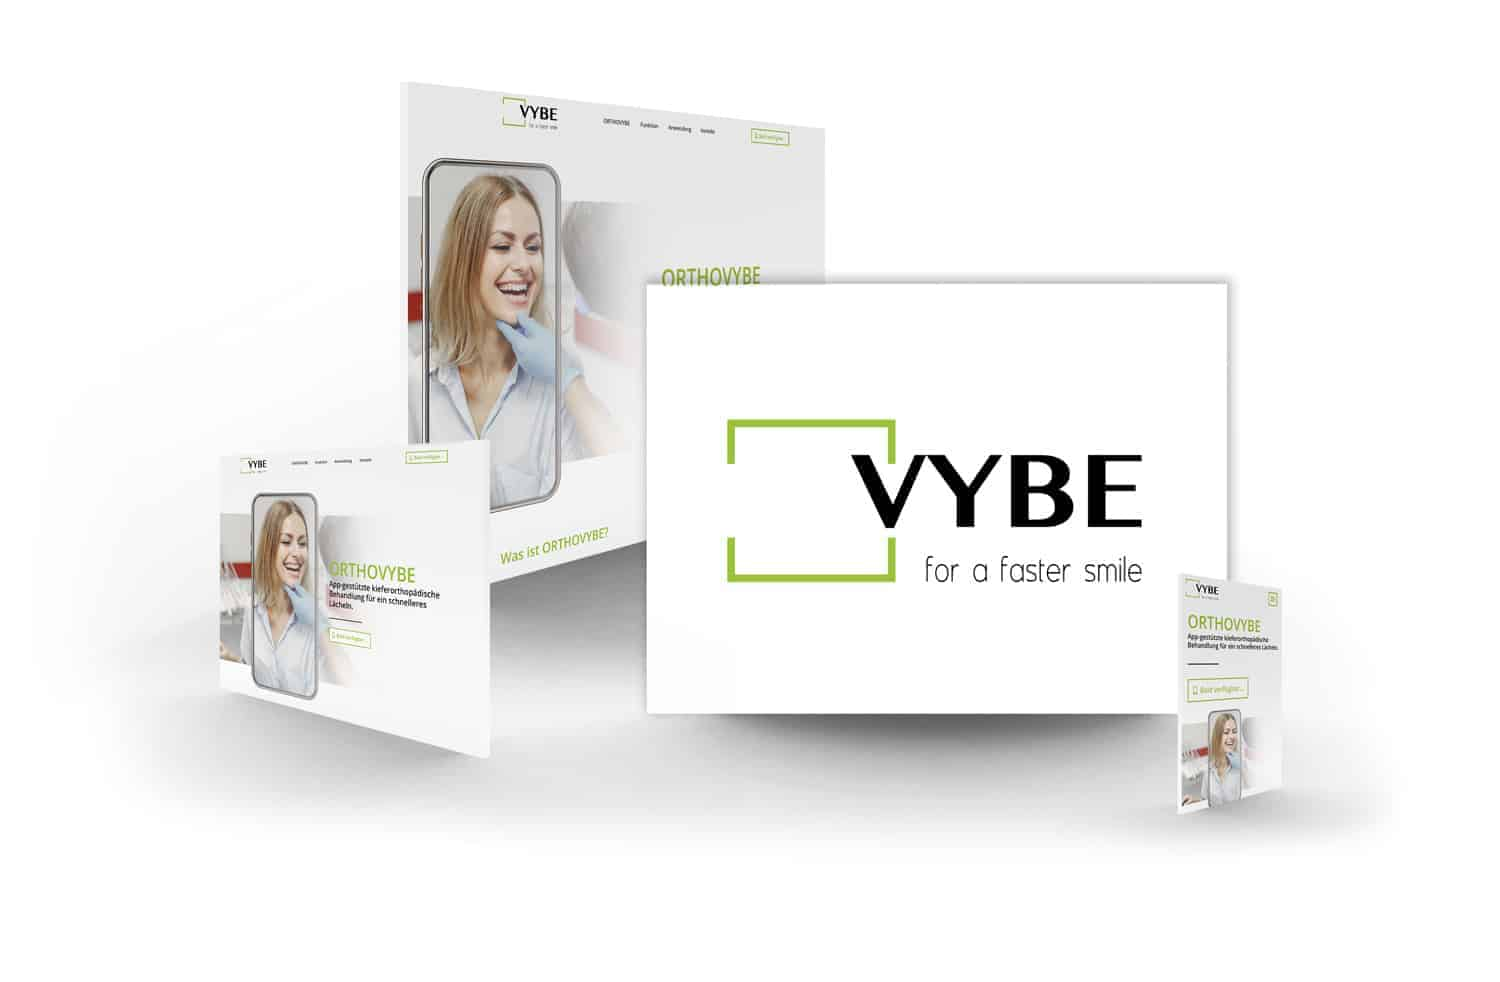 crocovision Webdesign Referenz VYBE - for a faster smile